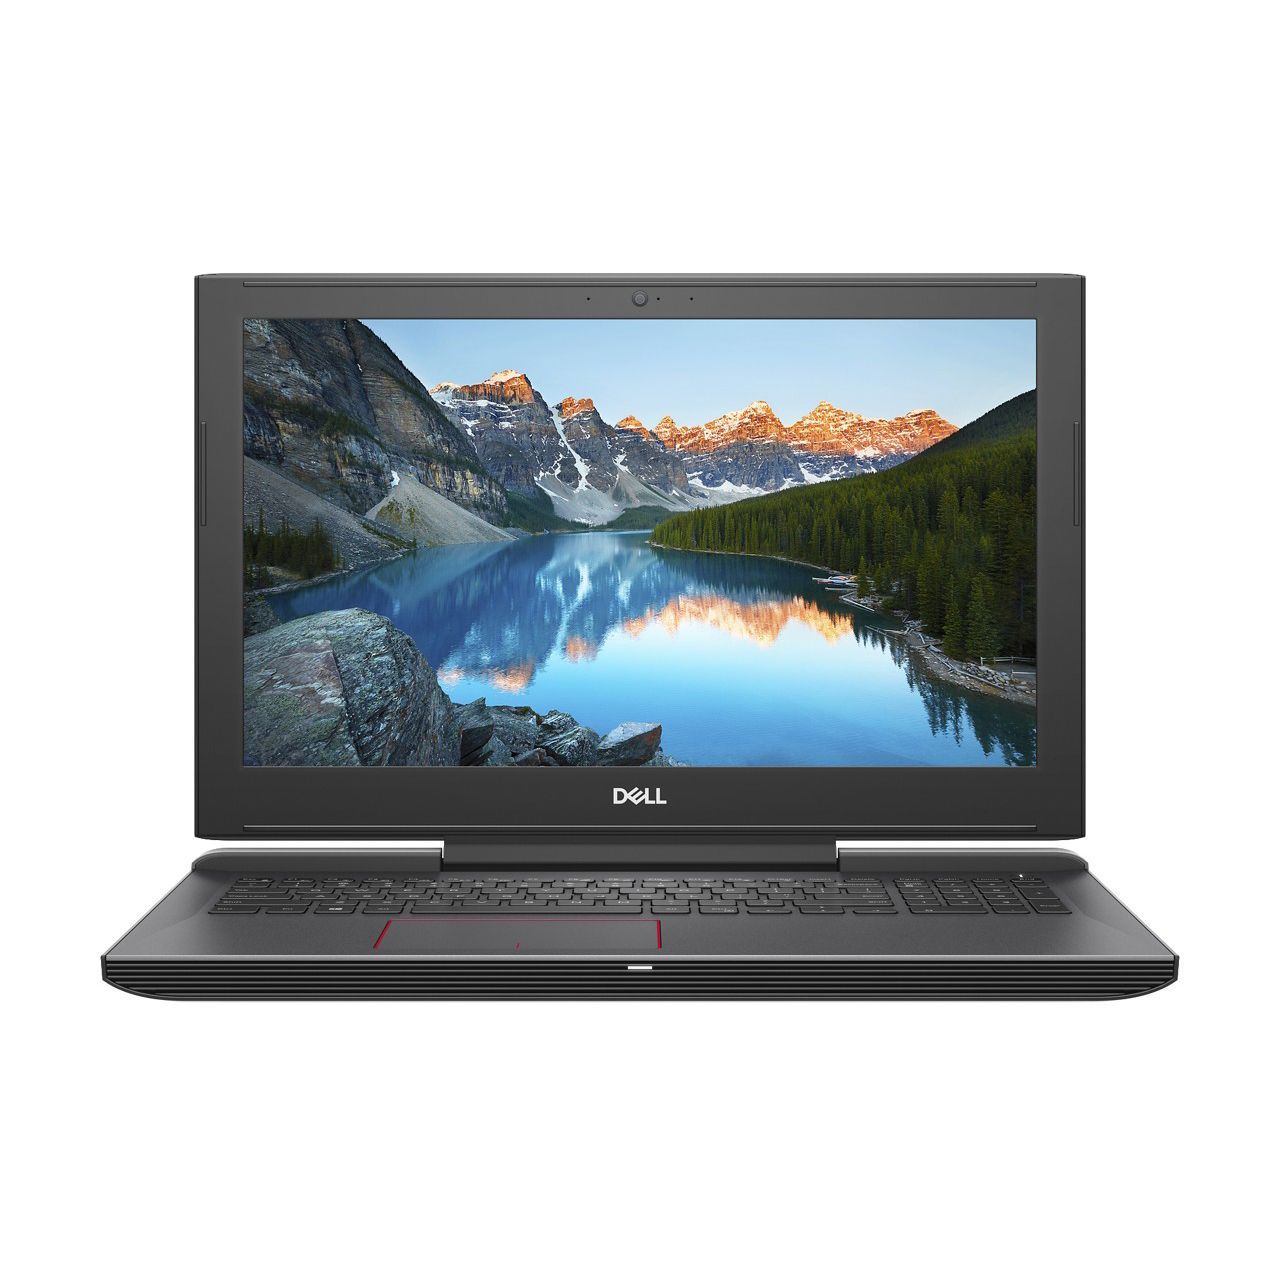 Notebook Dell Inspiron 7577 15.6 Full HD Intel Core i7-7700HQ GTX 1060-6GB RAM 16GB HDD 1TB + SSD 256GB Windows 10 Home